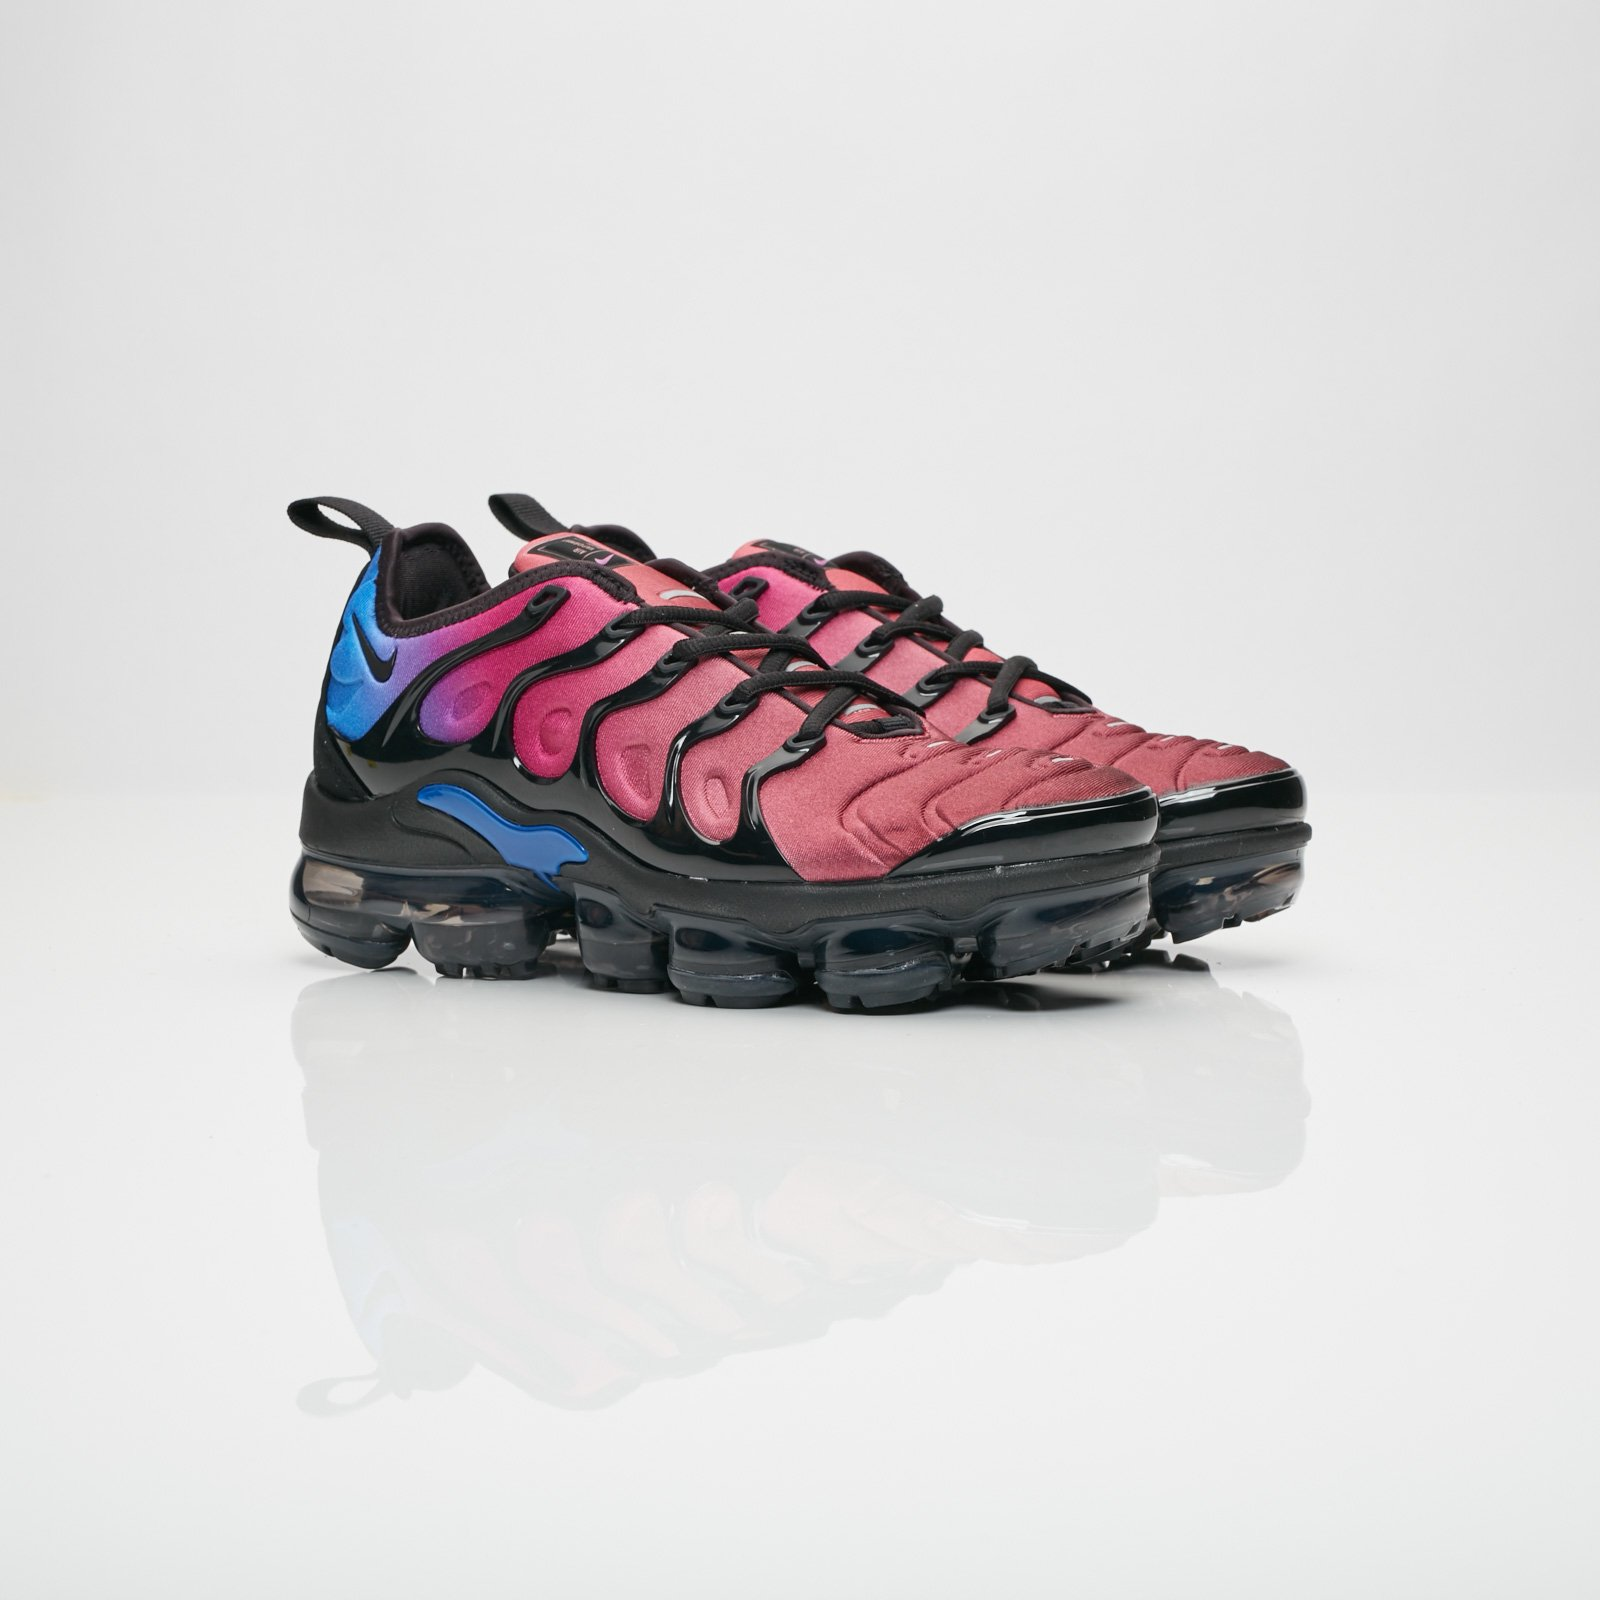 c1ccee06925 Nike Wmns Air Vapormax Plus - Ao4550-001 - Sneakersnstuff